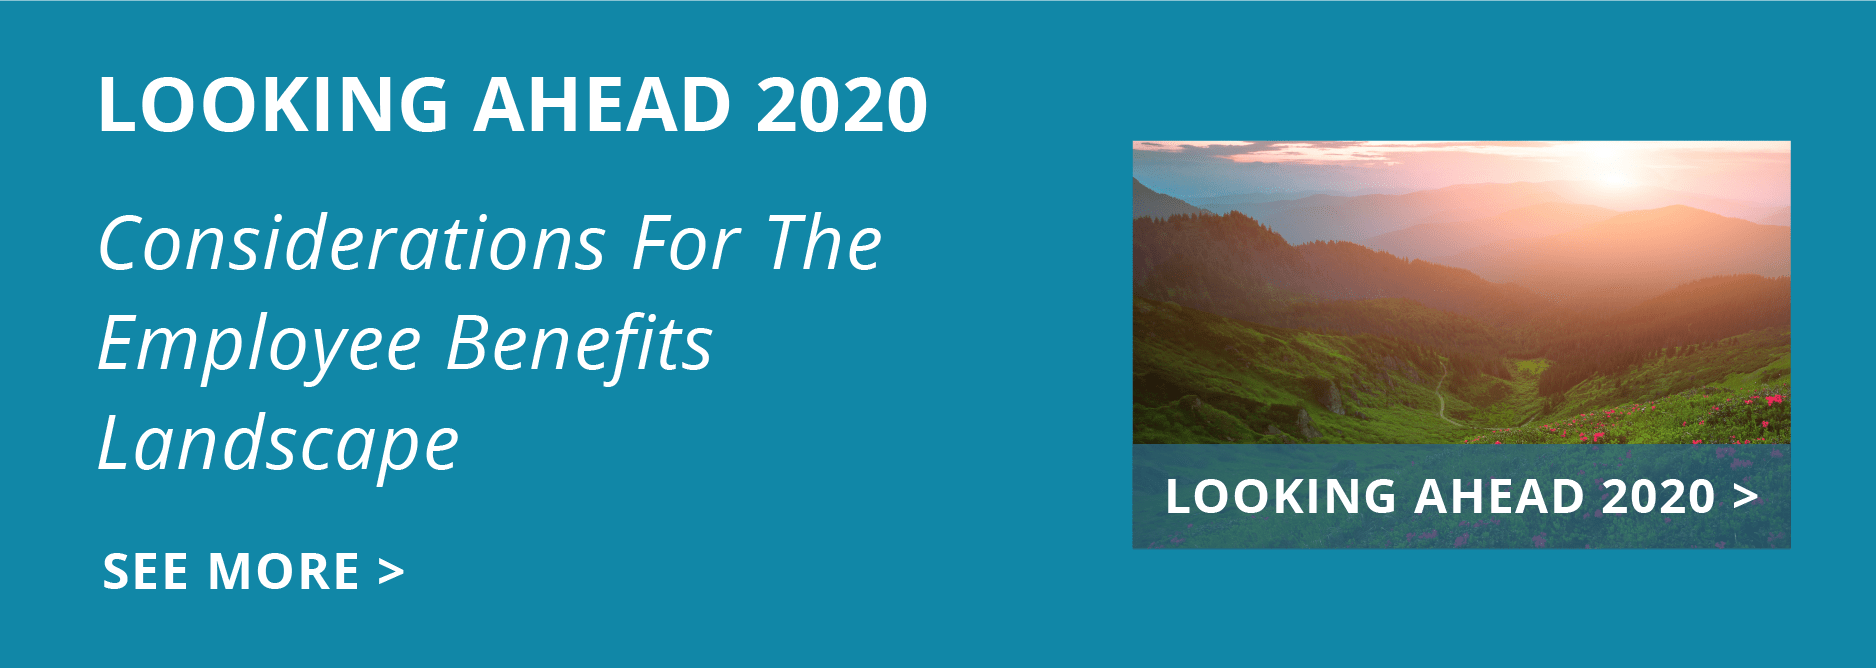 Looking Ahead: Considerations for the Employee Benefits Landscape in 2020